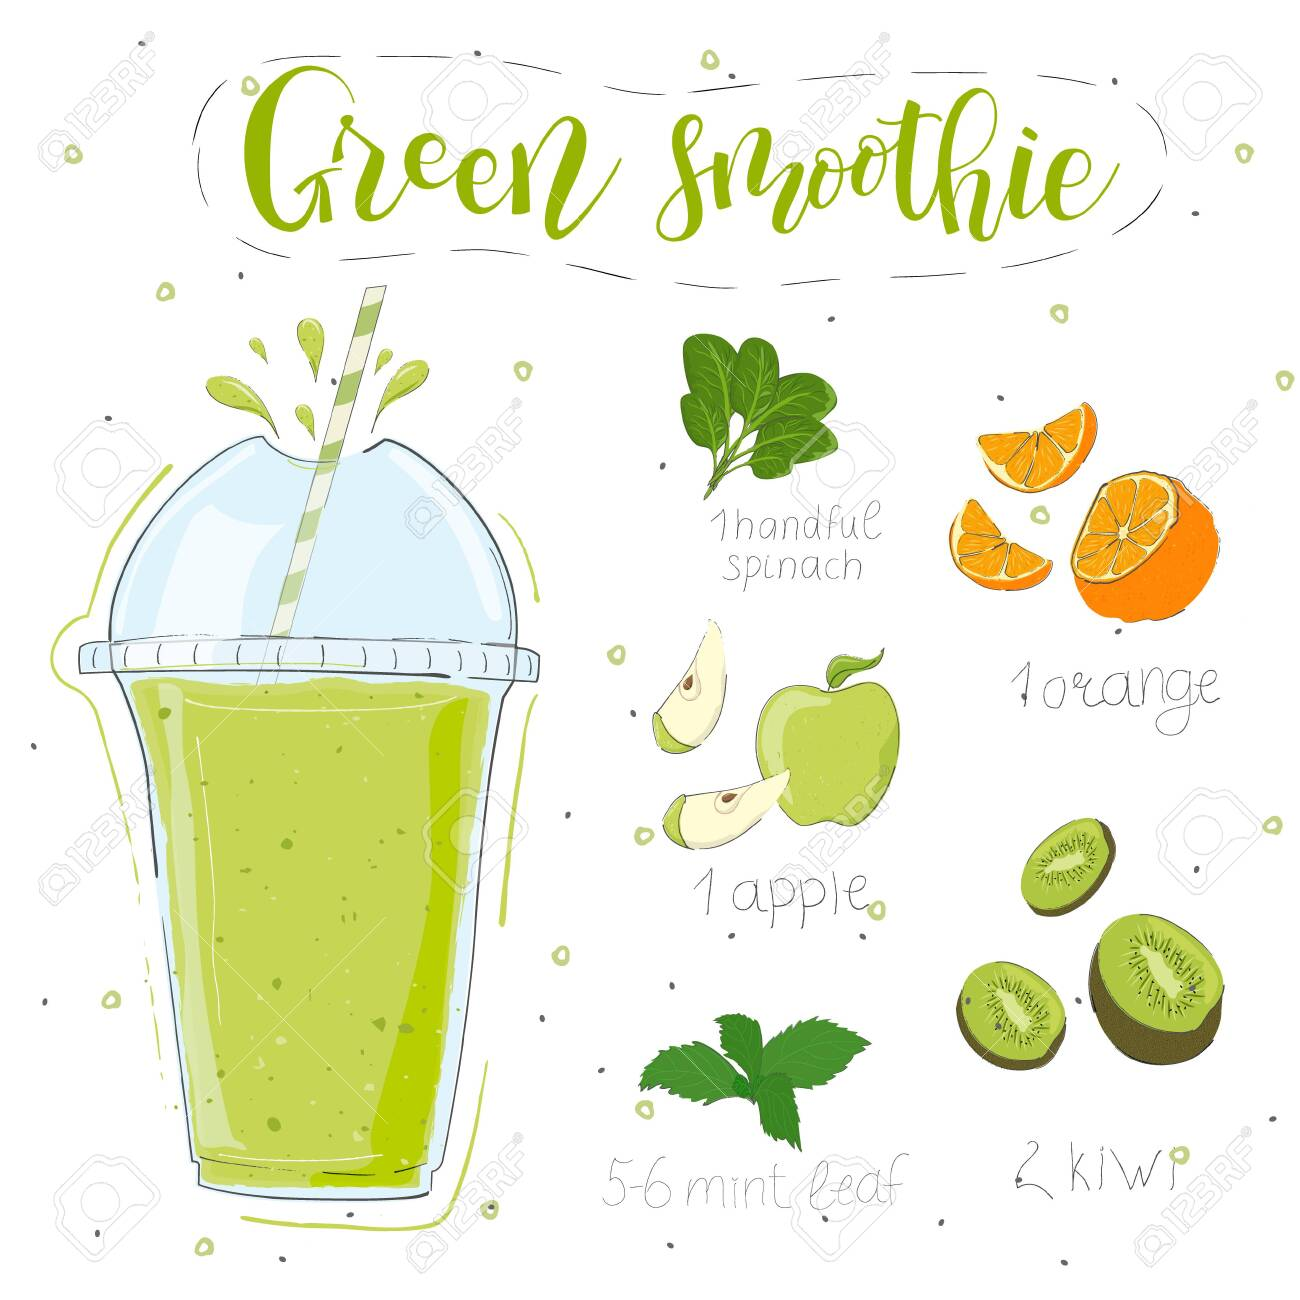 Green smoothie recipe. With illustration of ingredients. Hand draw spinach, orange, apple, kiwi, mint. Doodle style - 142227113